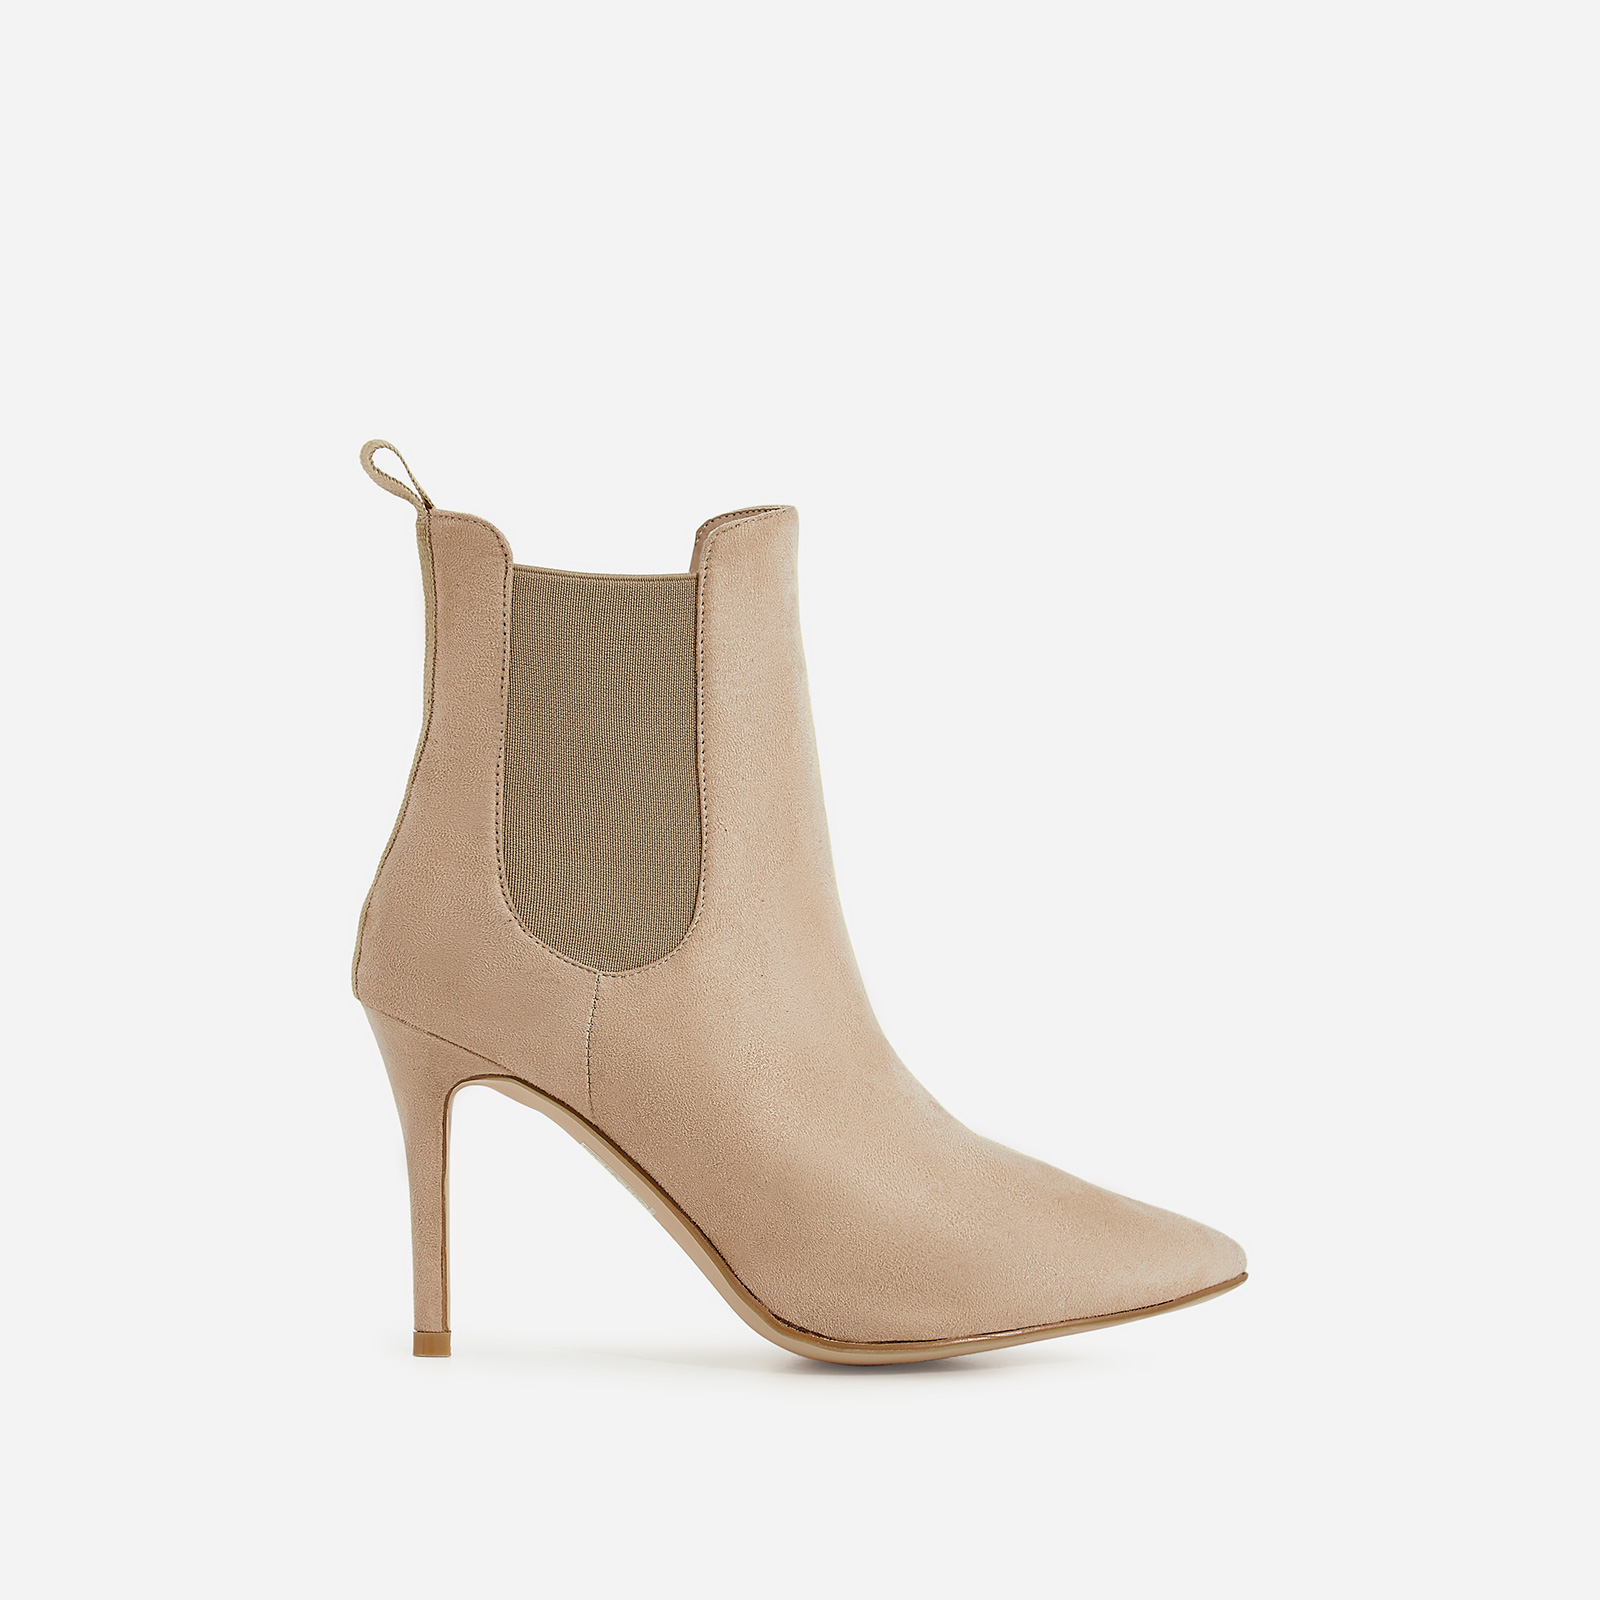 Hettie Elasticated Ankle Boot In Nude Faux Suede